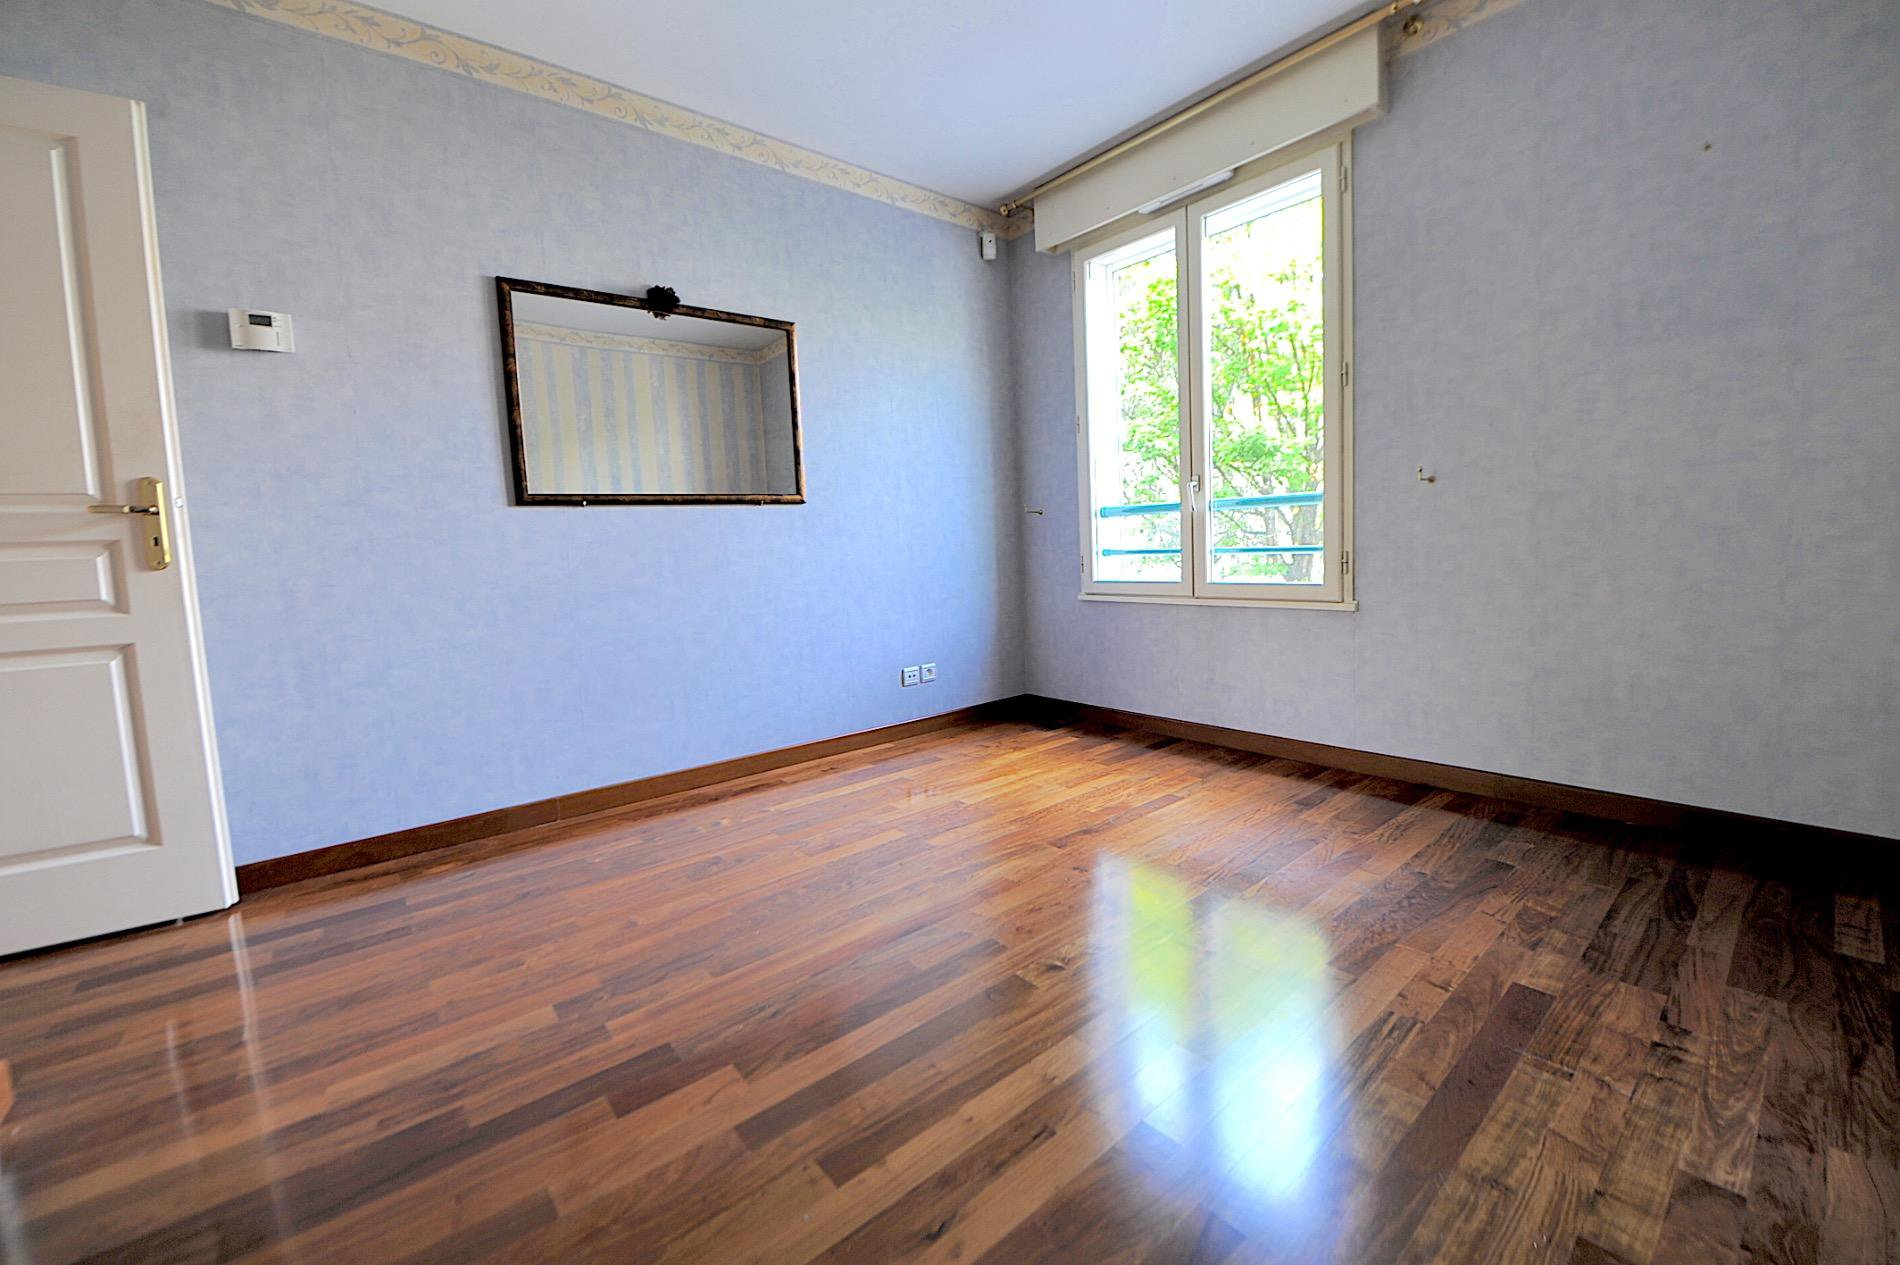 A872 -Annecy appartement T3 dans le triangle d'or.